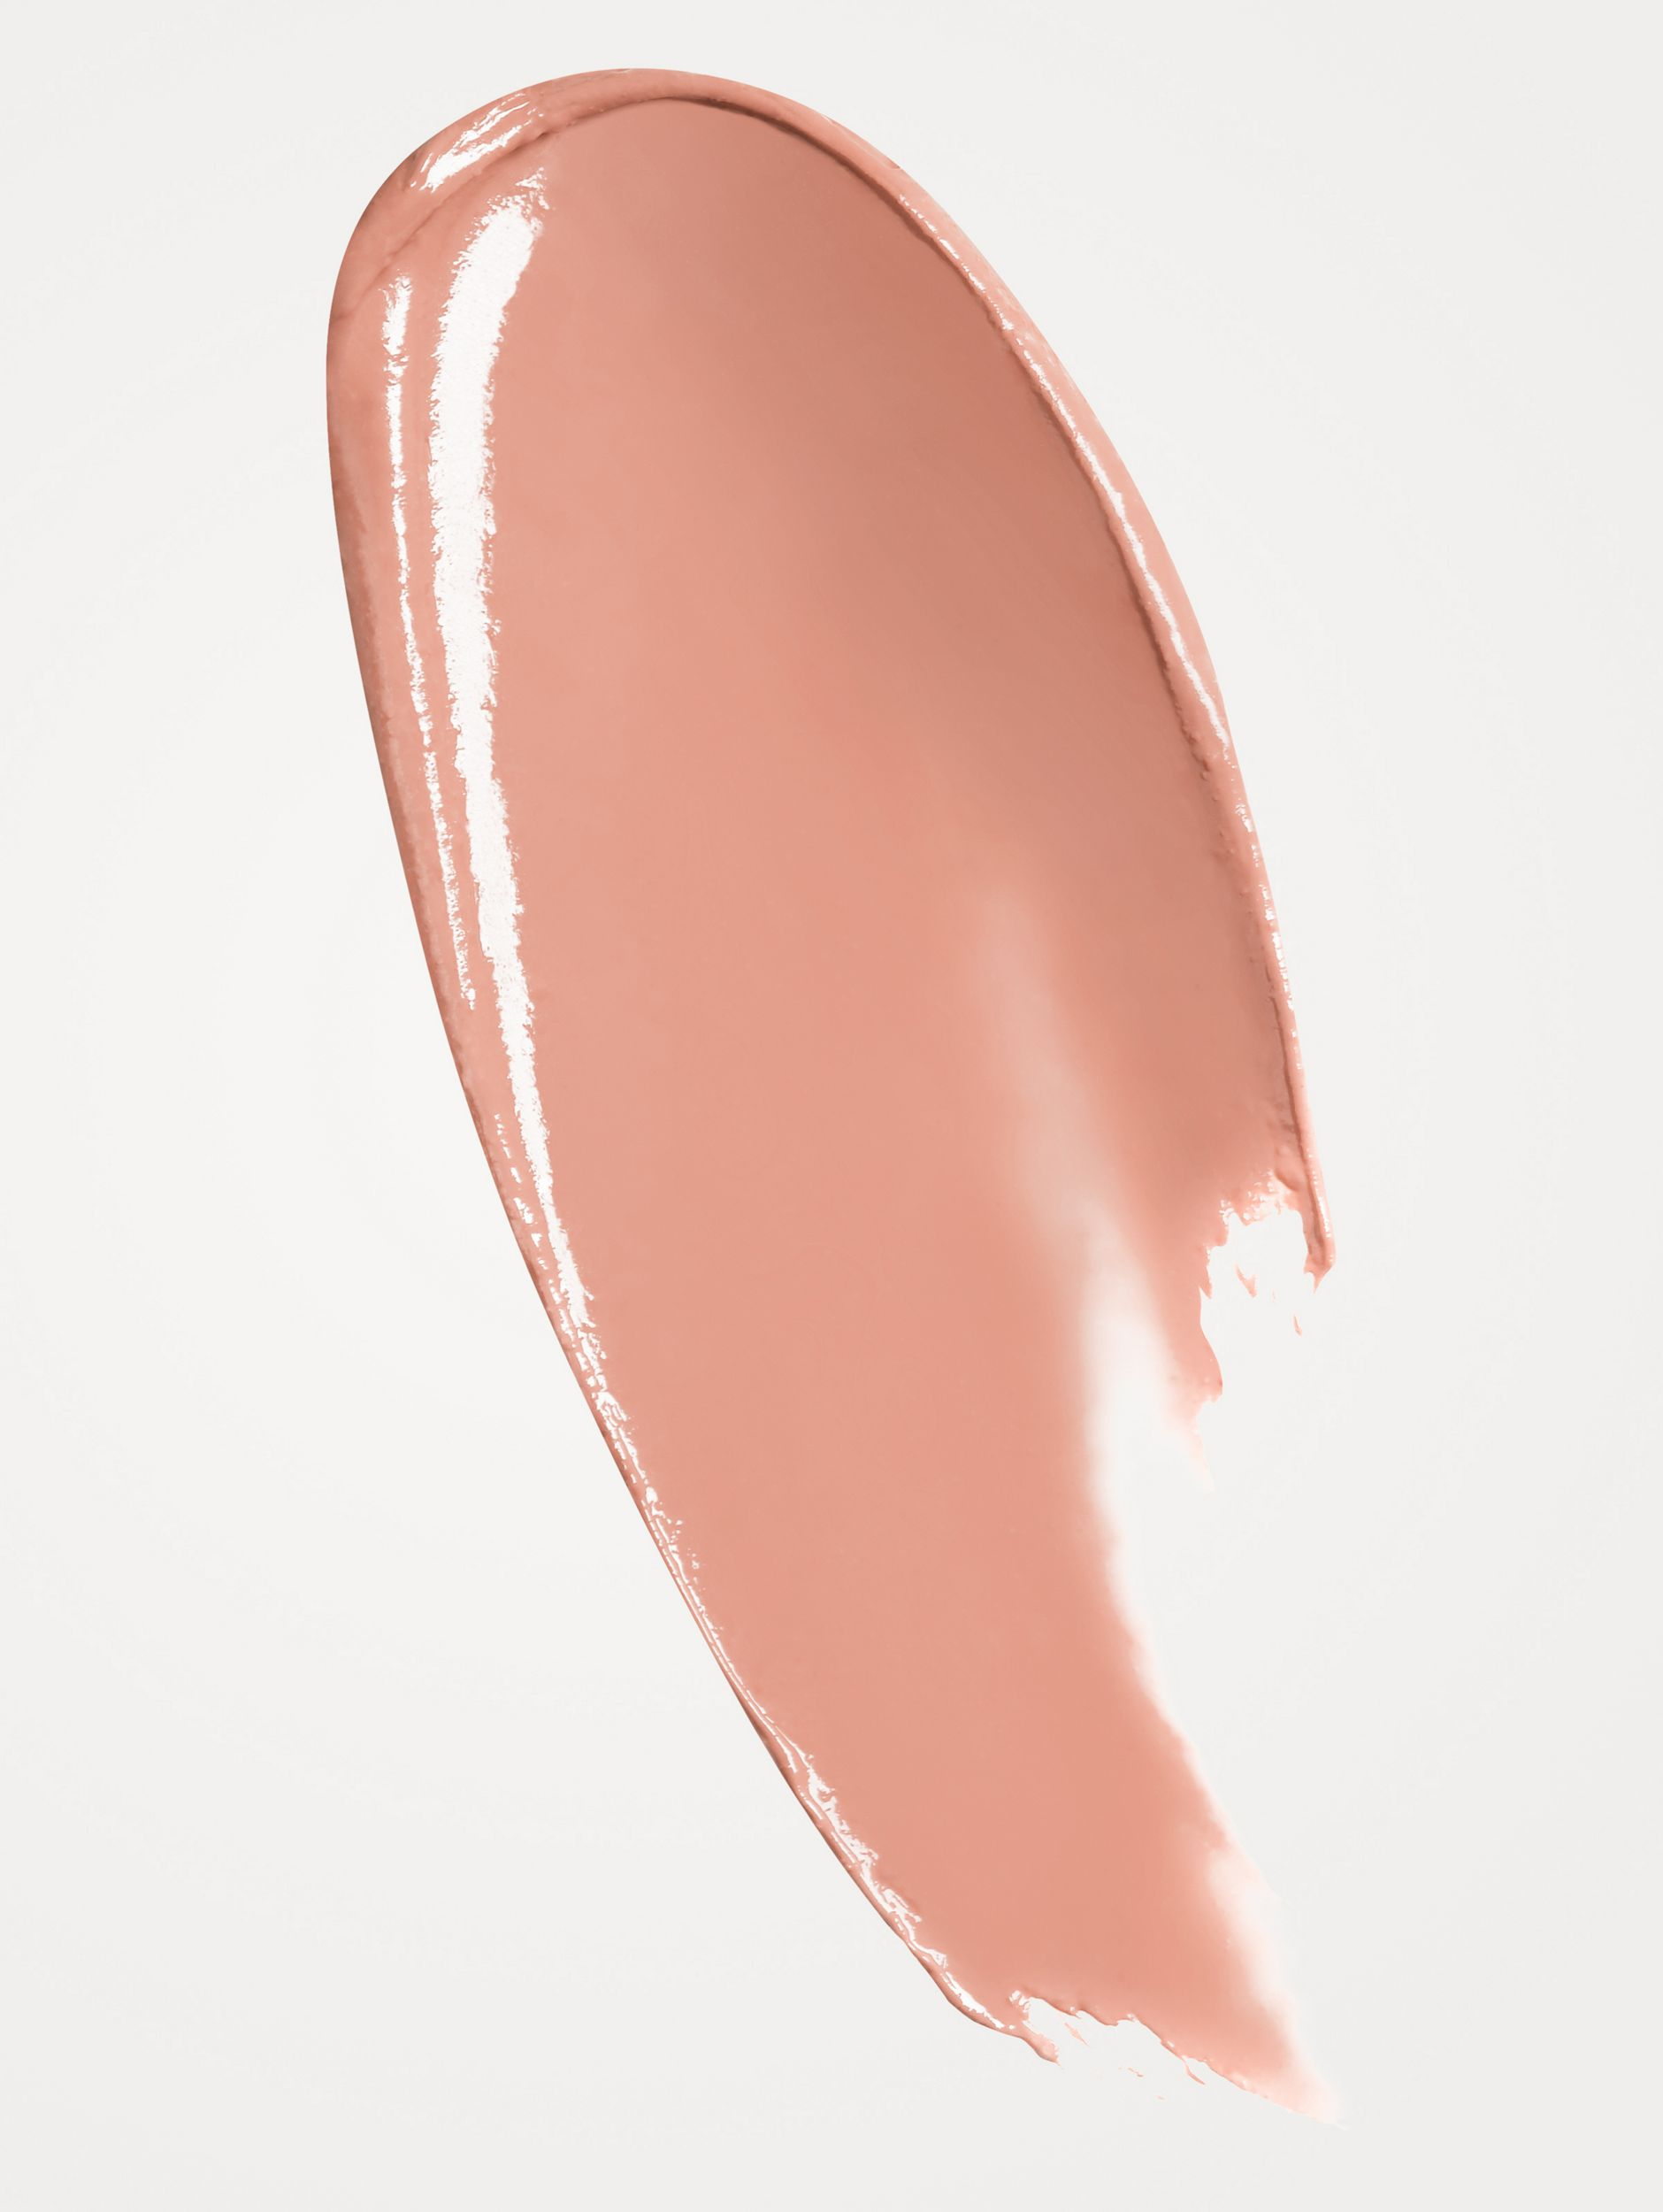 Burberry Full Kisses – Nude Blush No.501 - Women | Burberry United Kingdom - 2